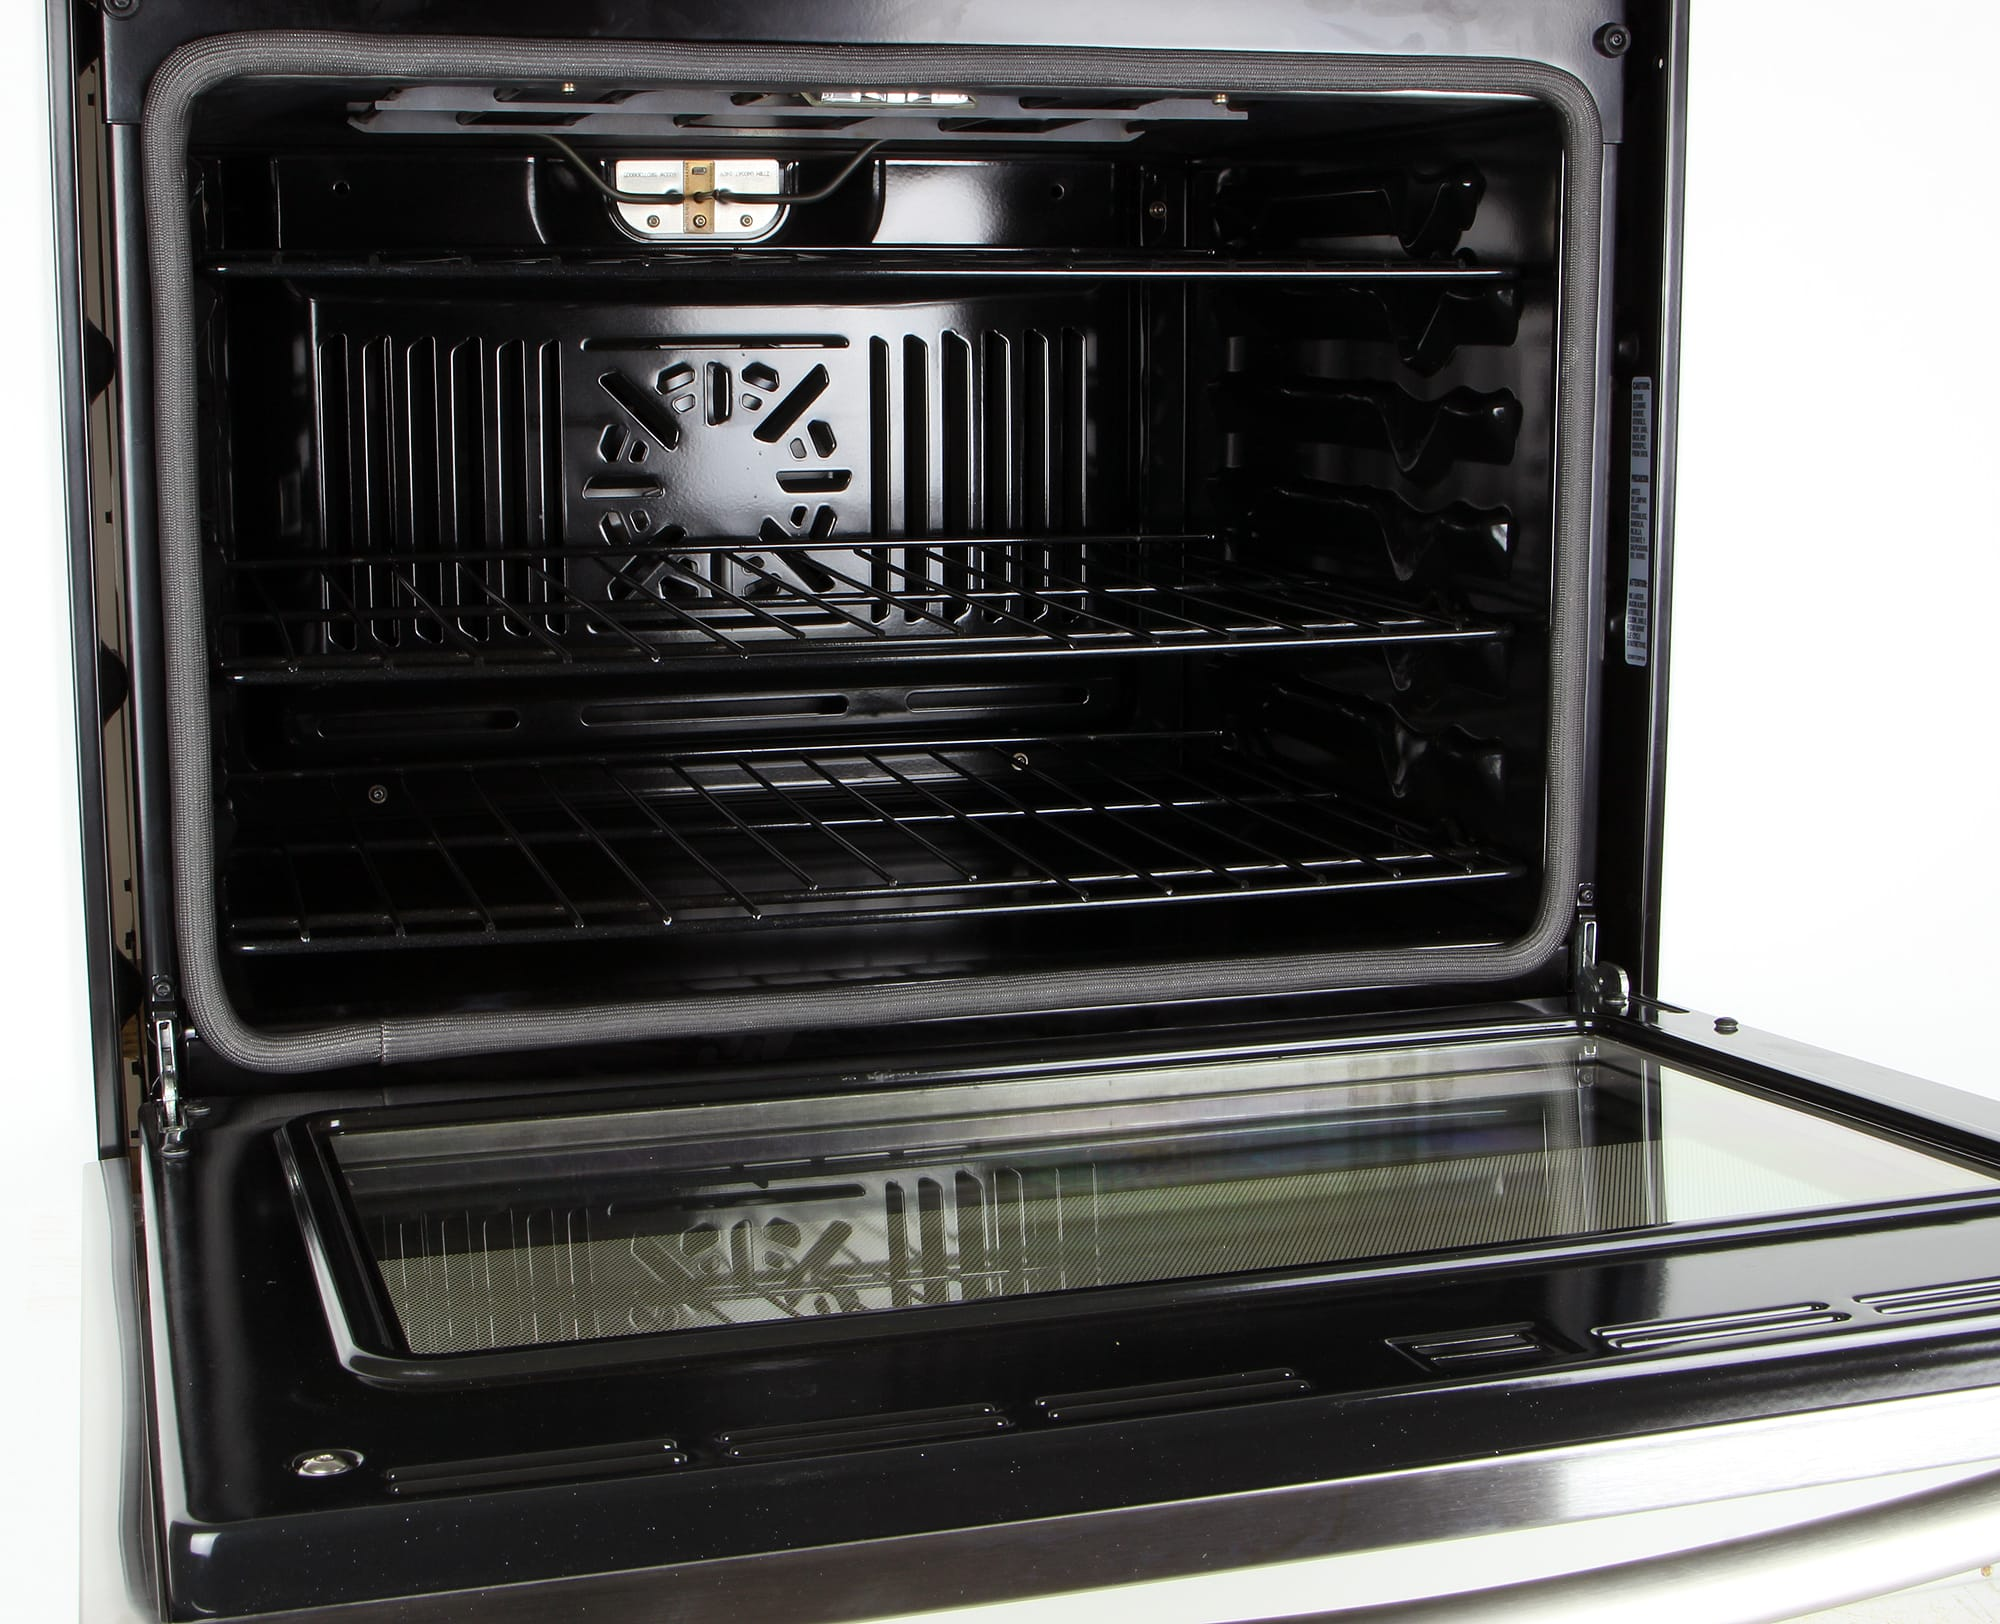 The GE JT5000SFSS has a 5.0-cubic-foot capacity cavity which should suffice for most of your cooking needs.